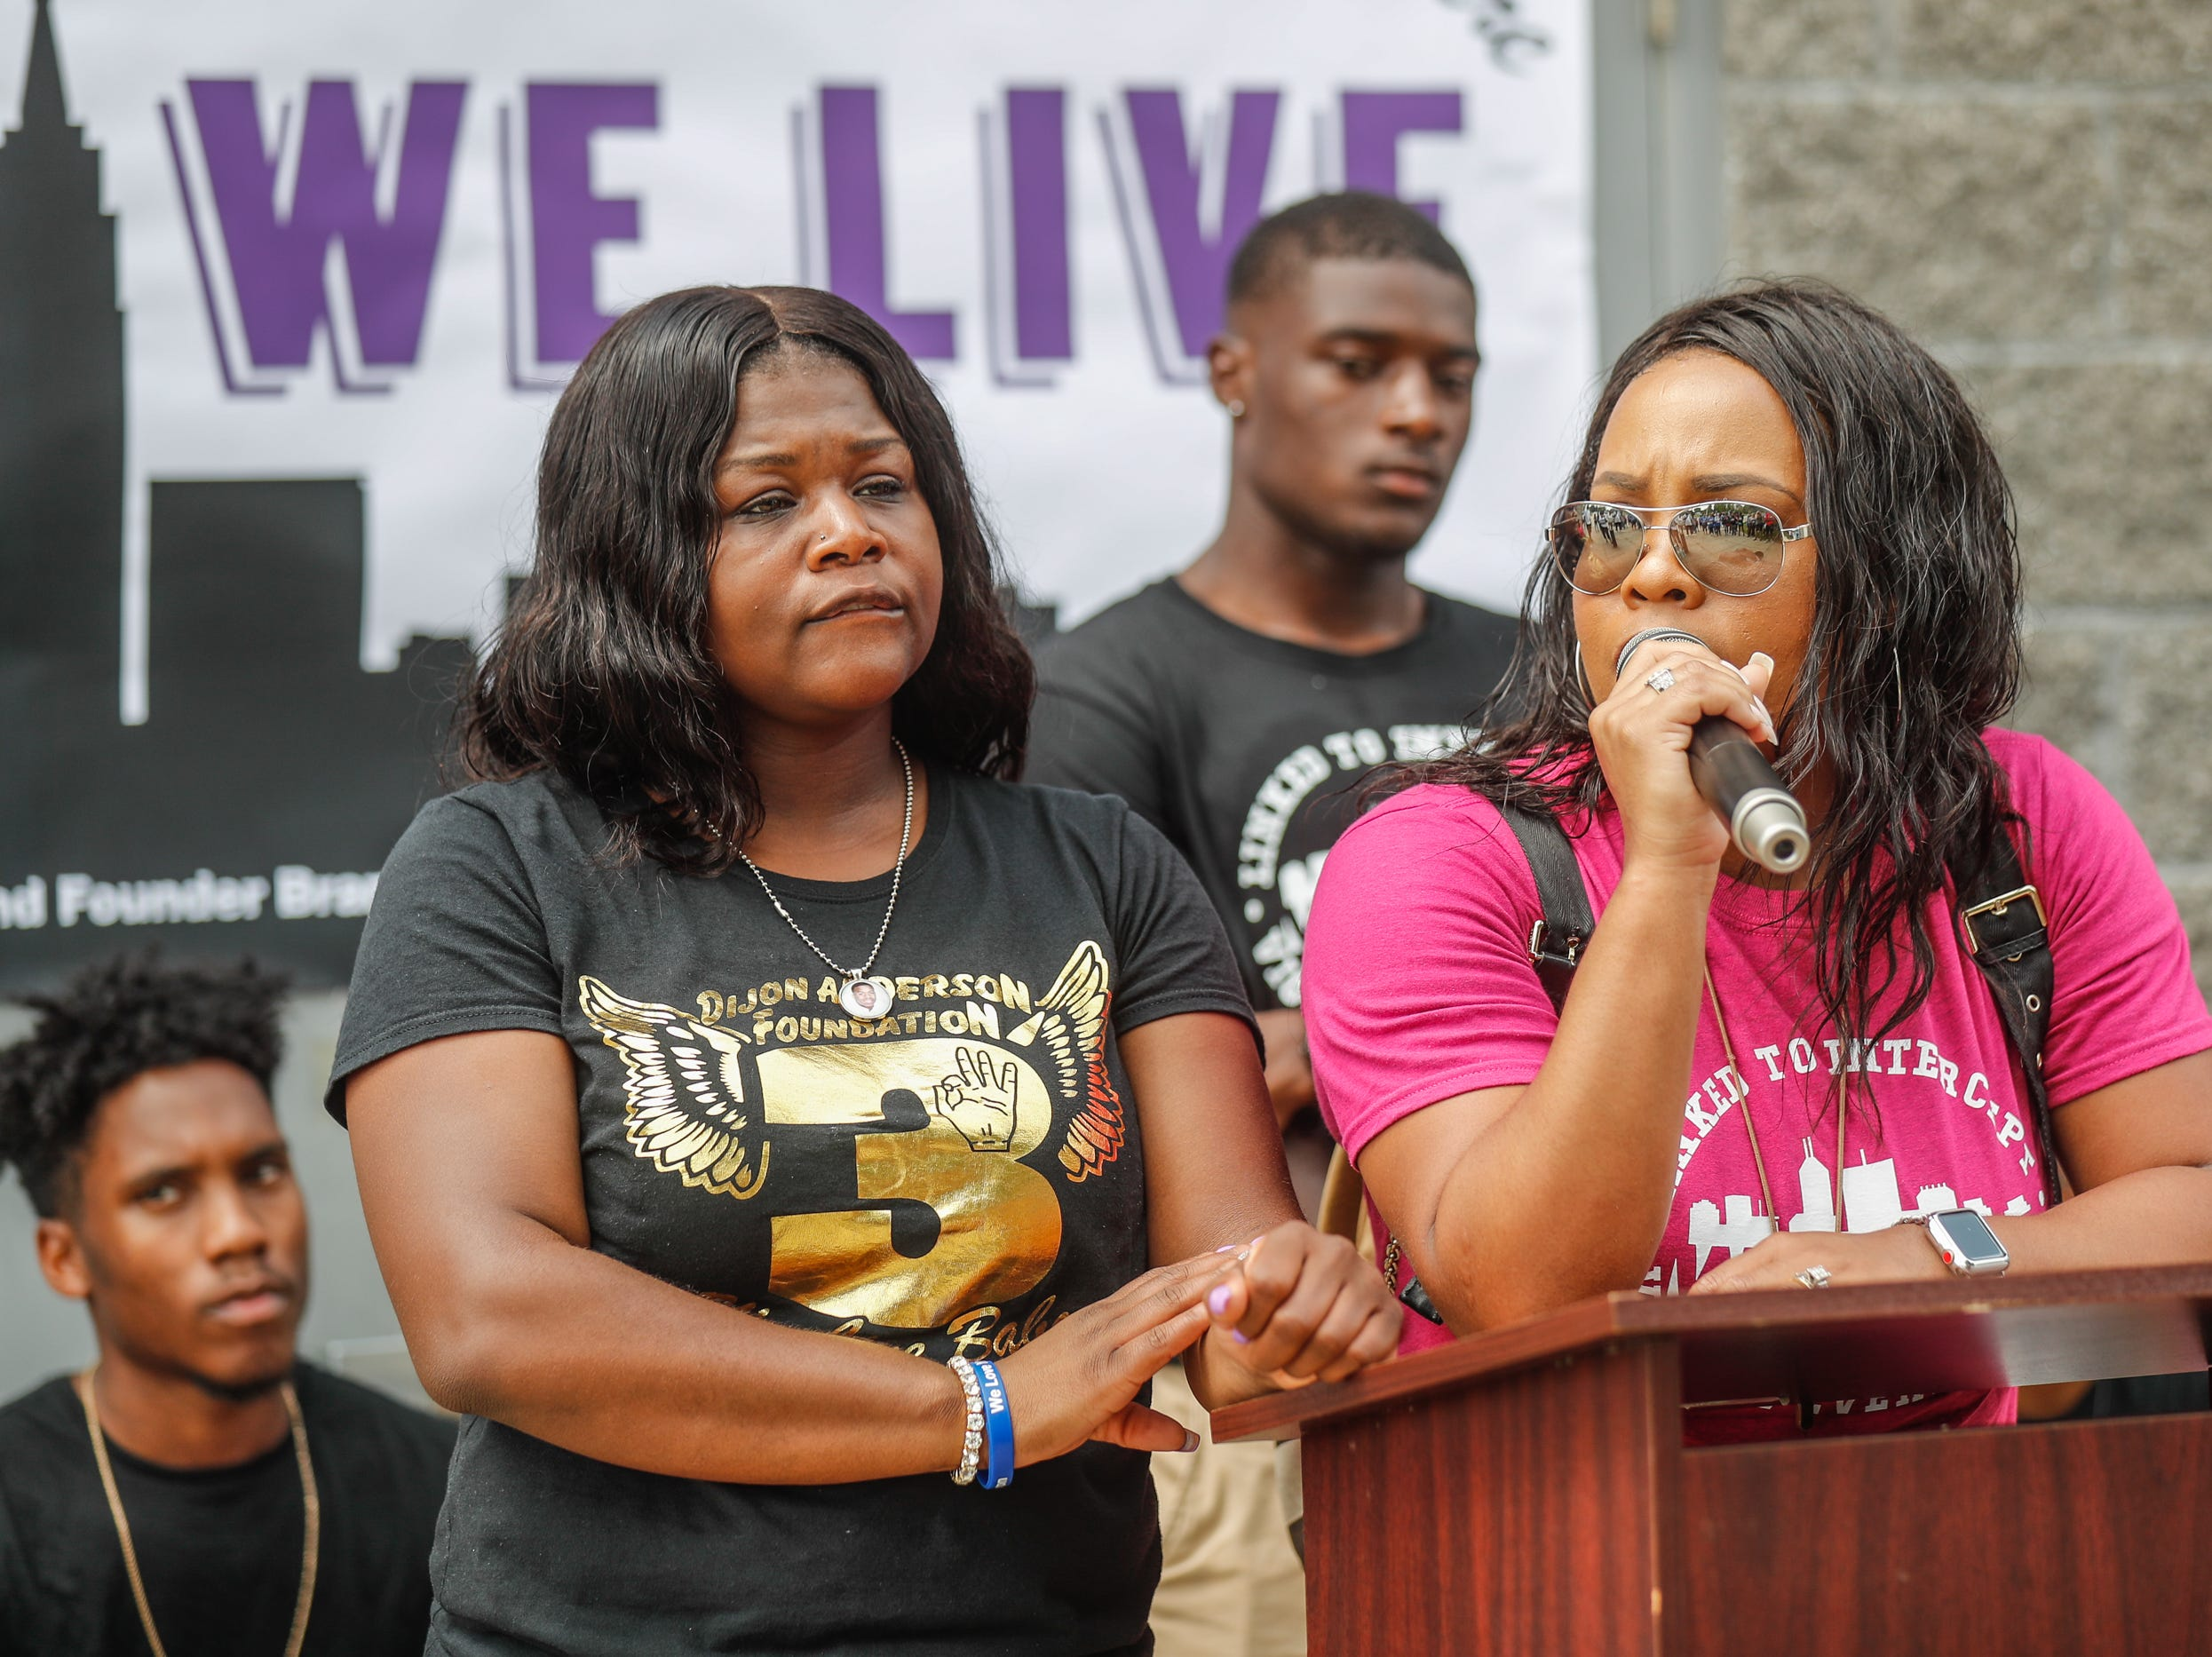 Christa Frazier, mother of Dijon Anderson, a Warren Central High School student who was killed in 2017, left, and Ursula Washington, a licensed Funeral Director and embalmer, speak during the second annual 'We Live' Peace Walk and Community Day to end youth violence at Washington Park on Saturday, Aug. 11, 2018. 'We Live,' which stands for 'Linked To Intercept Violence' was started by students from Warren Central High School in Indianapolis.